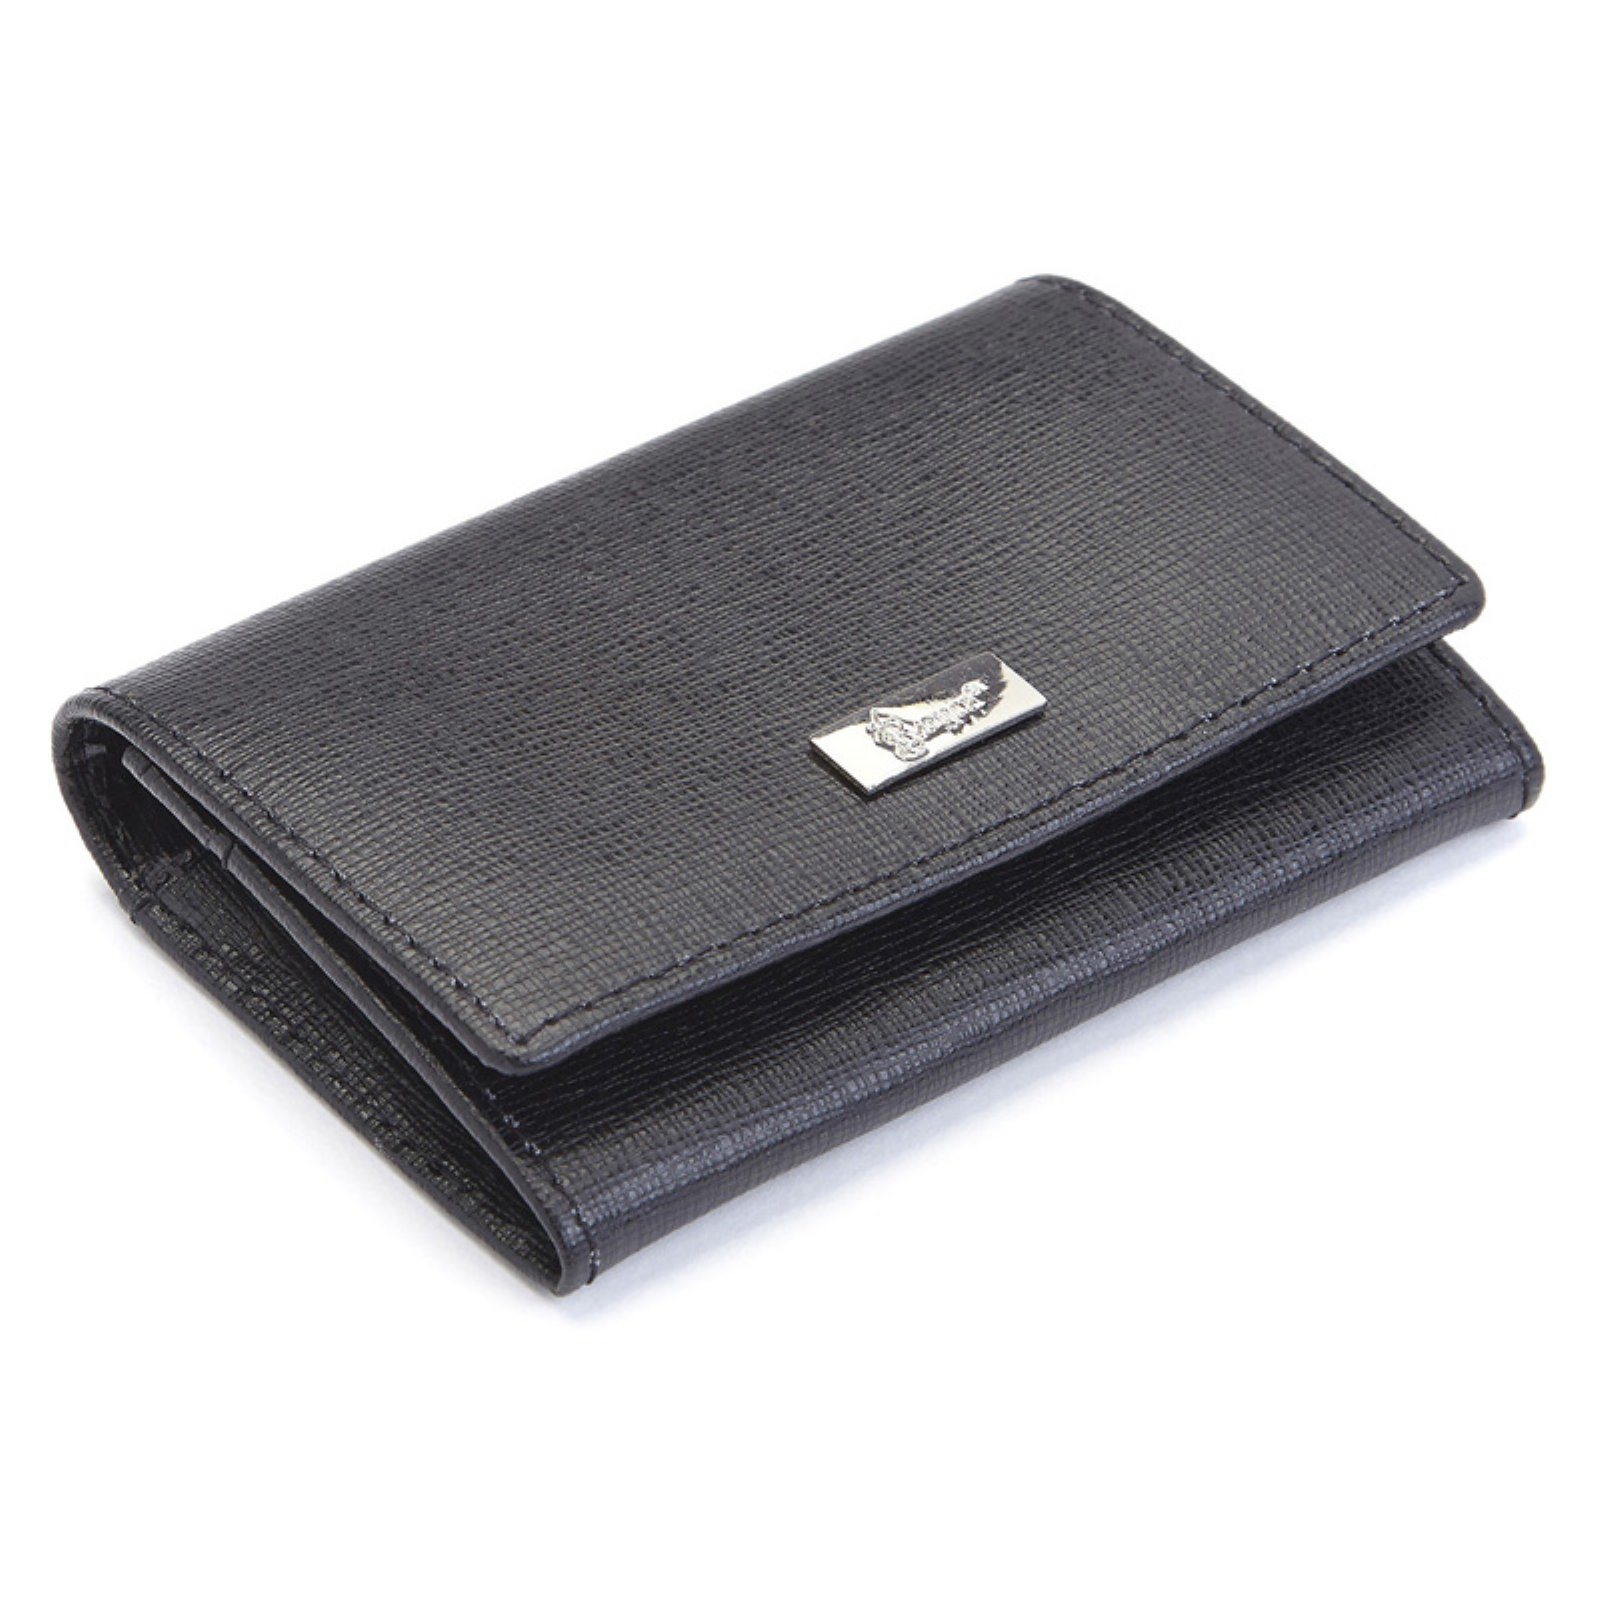 Royce Leather RFID Blocking Saffiano Leather Business Card Case - image 2 of 3